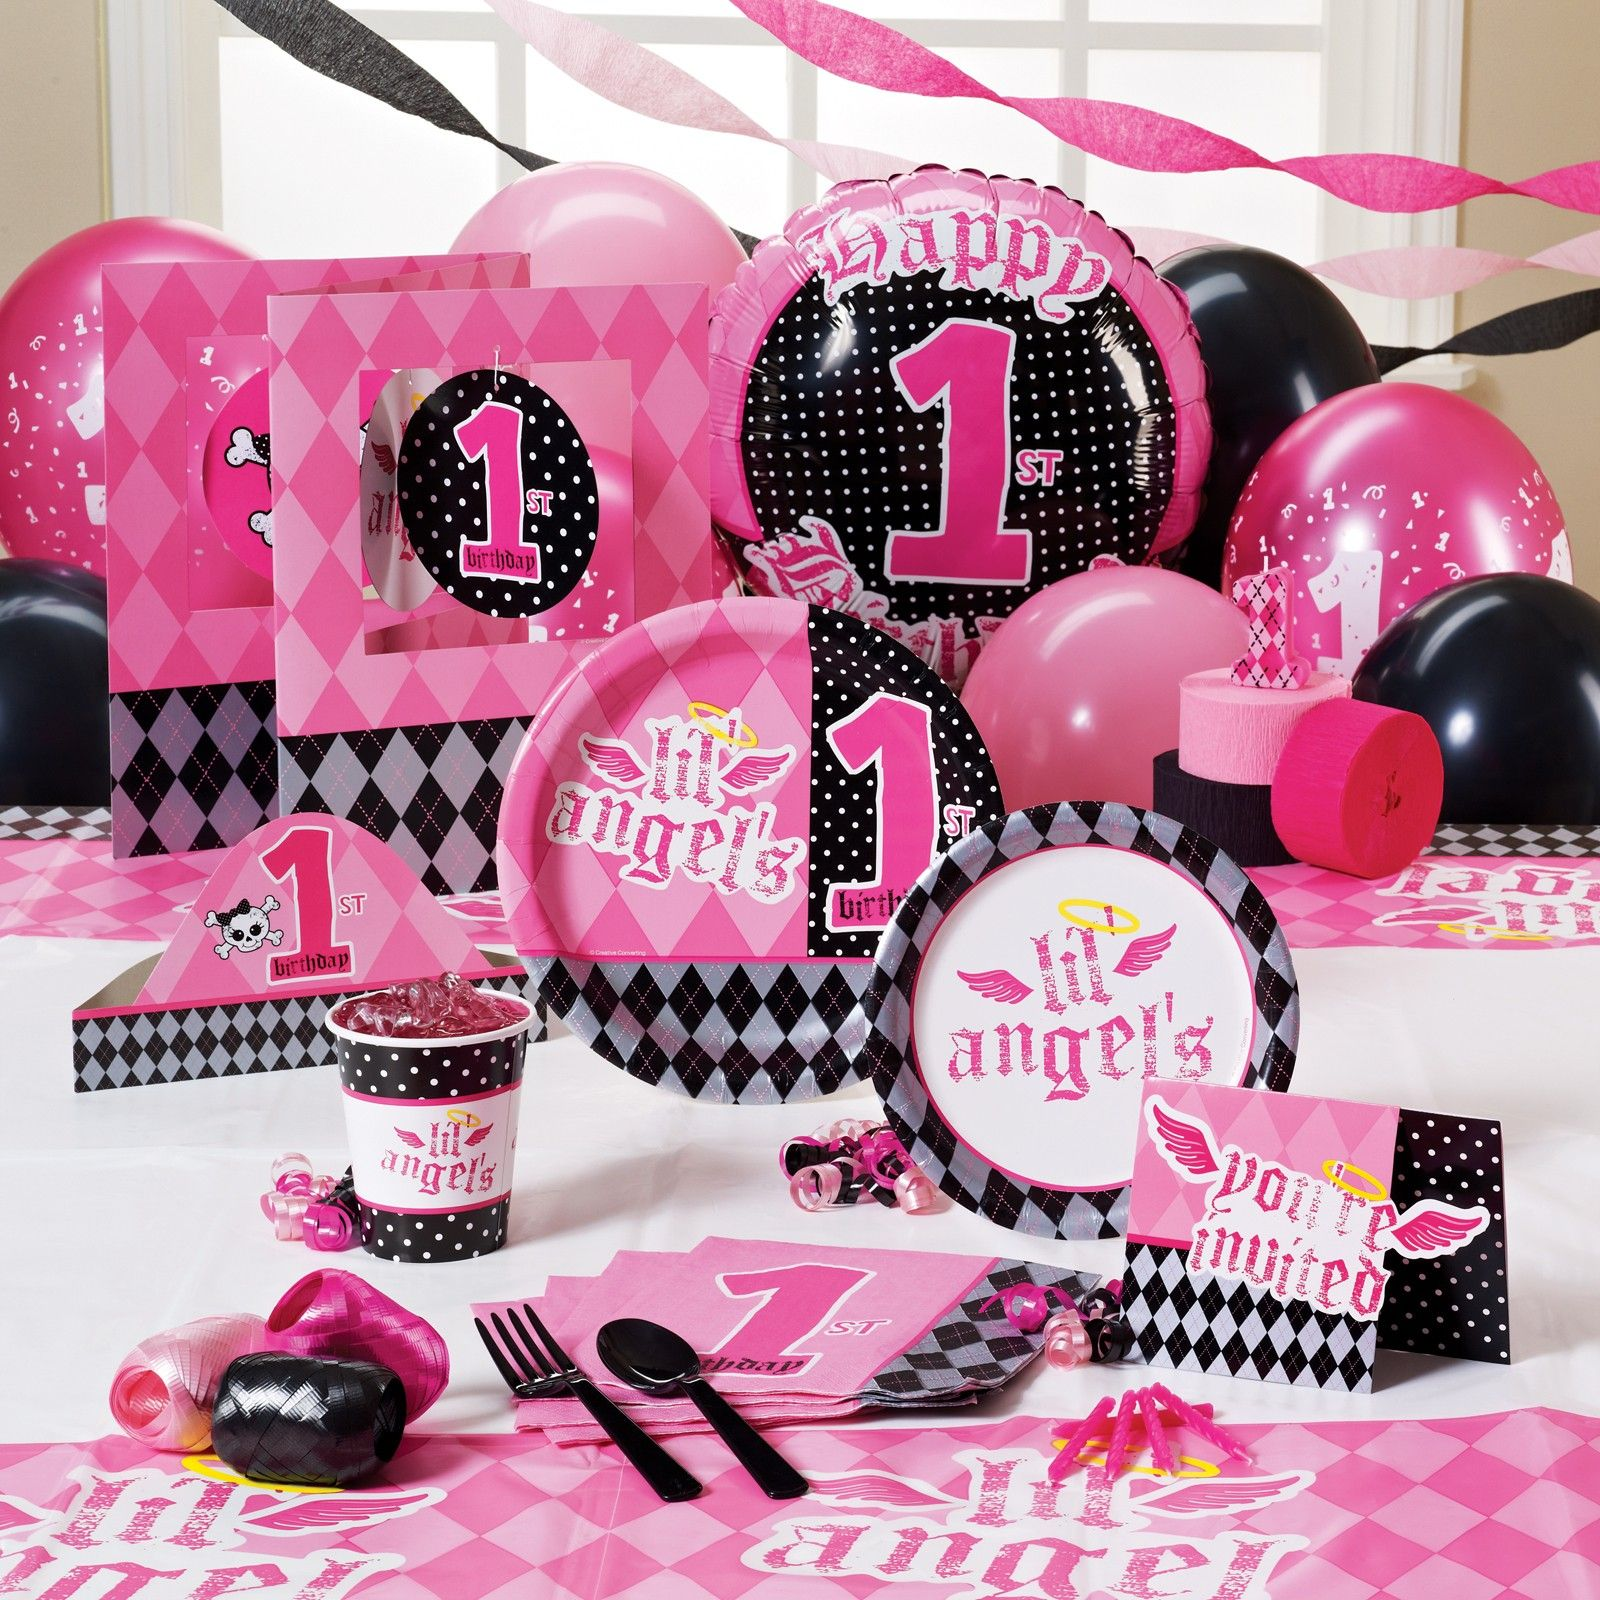 Lil Angel- 1st Birthday Party Theme! Really Cute!